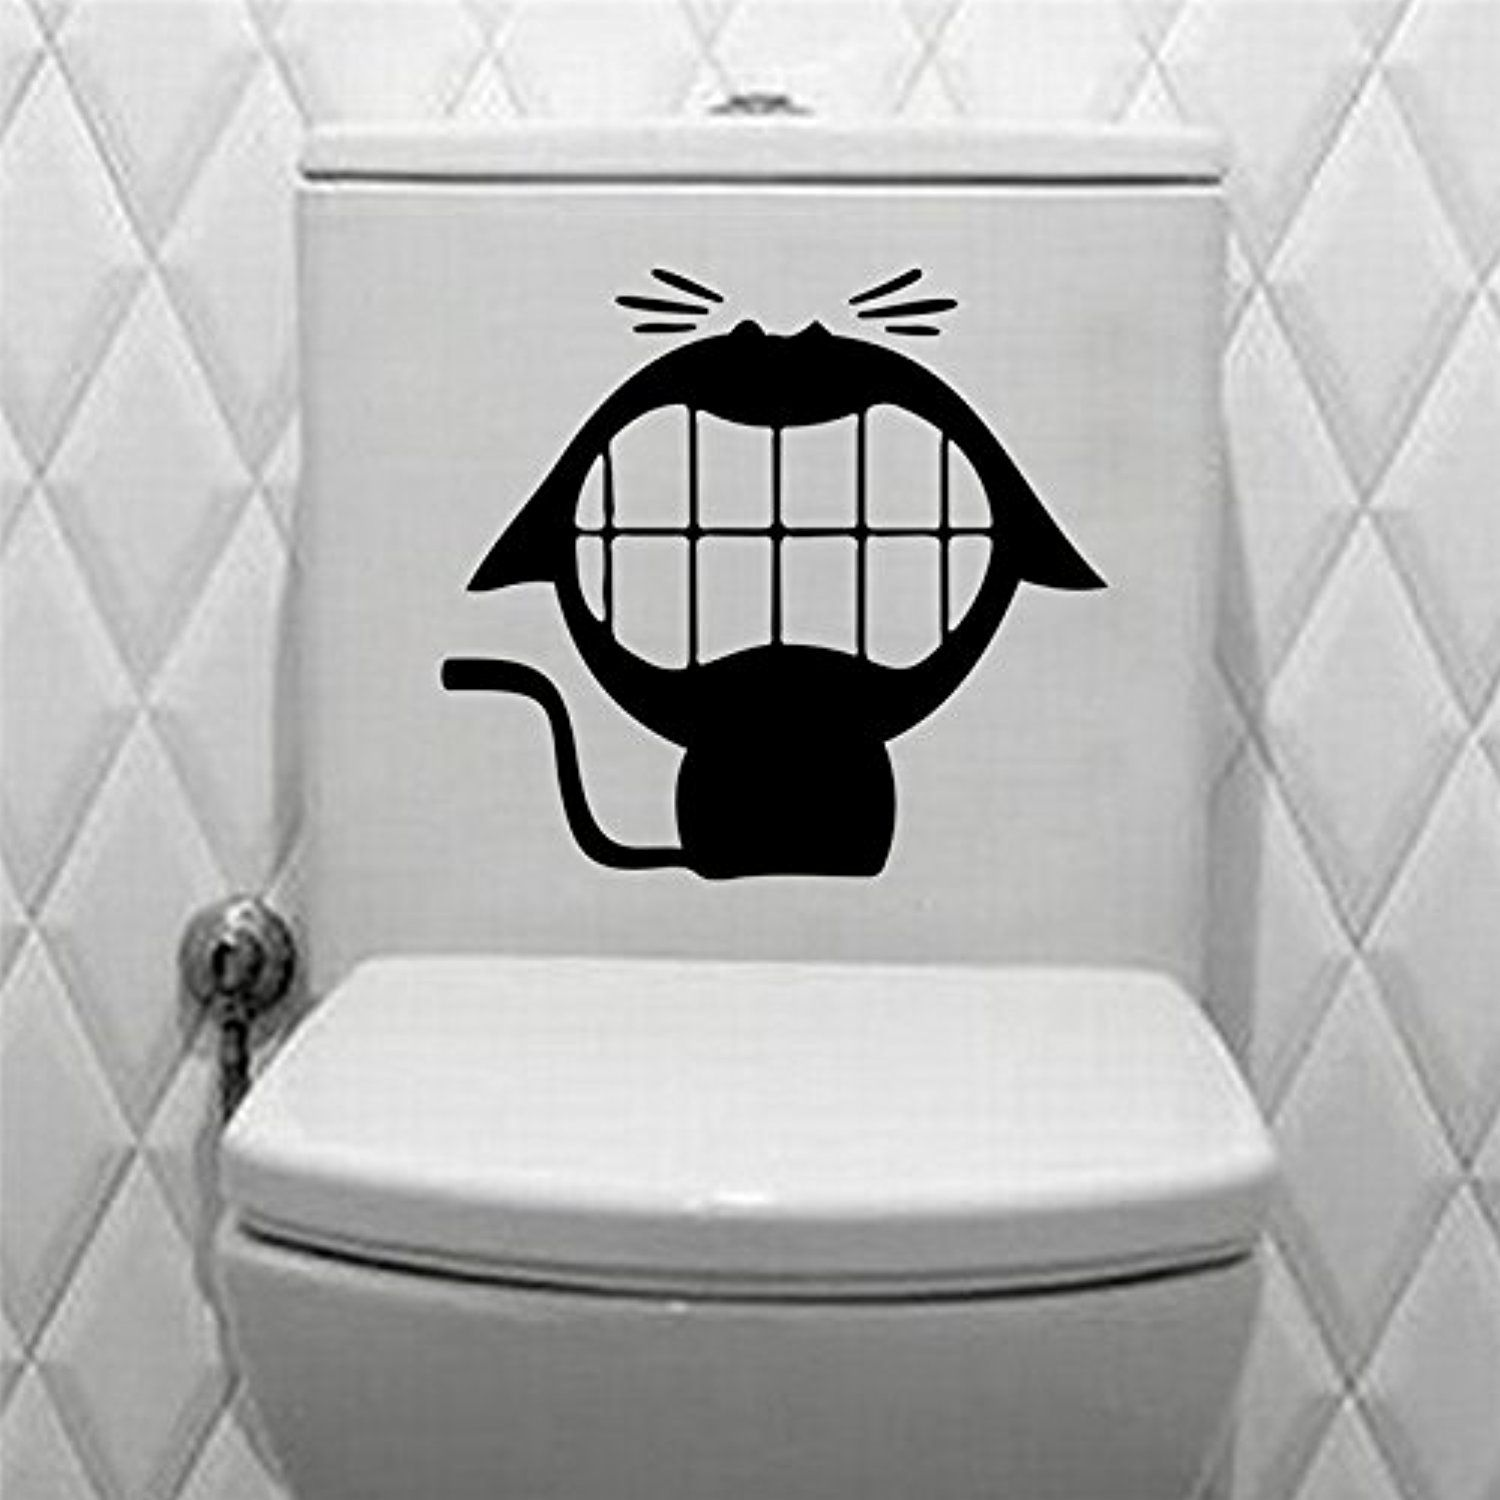 piece toilet wc wall sticker family diy decor art stickers home